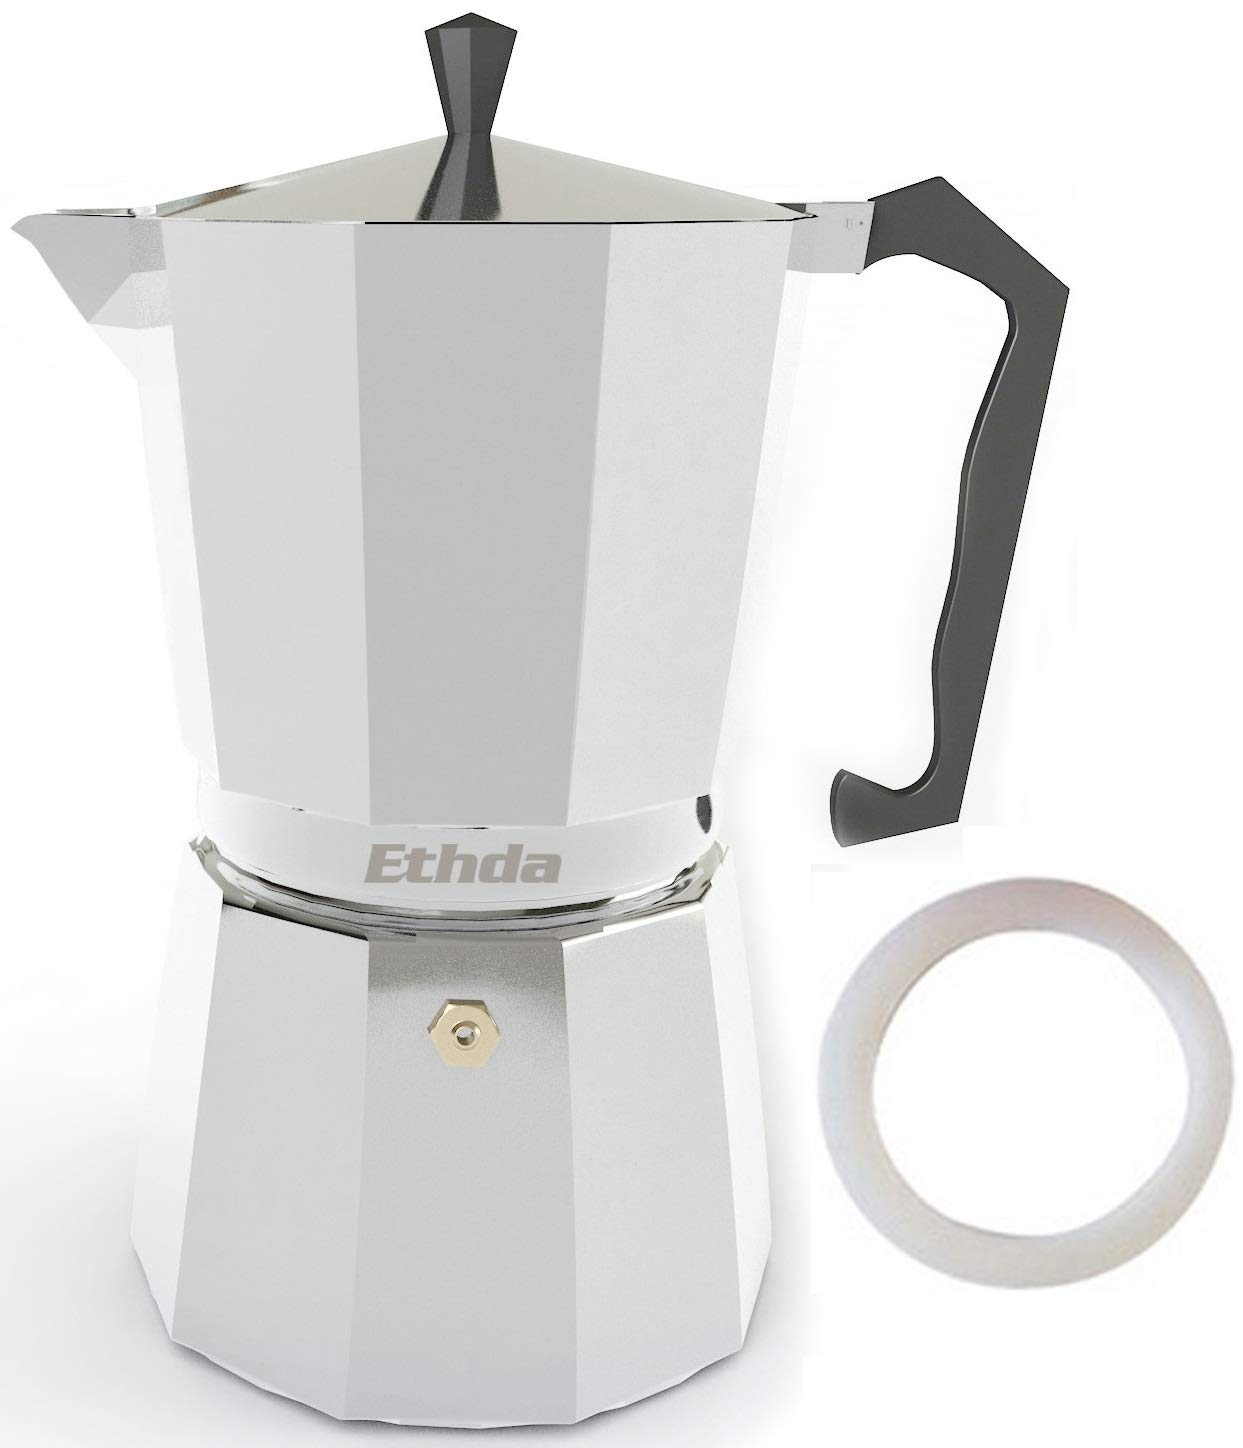 ETHDA Stovetop Espresso Maker, Moka Pot, Coffee Maker for Italian Cappuccino, Latte, Good for Gas or Electric Stovetop, Silver, Aluminum, Extra Gasket Included, Strong Handle,Gift for Mom (9 Cup)